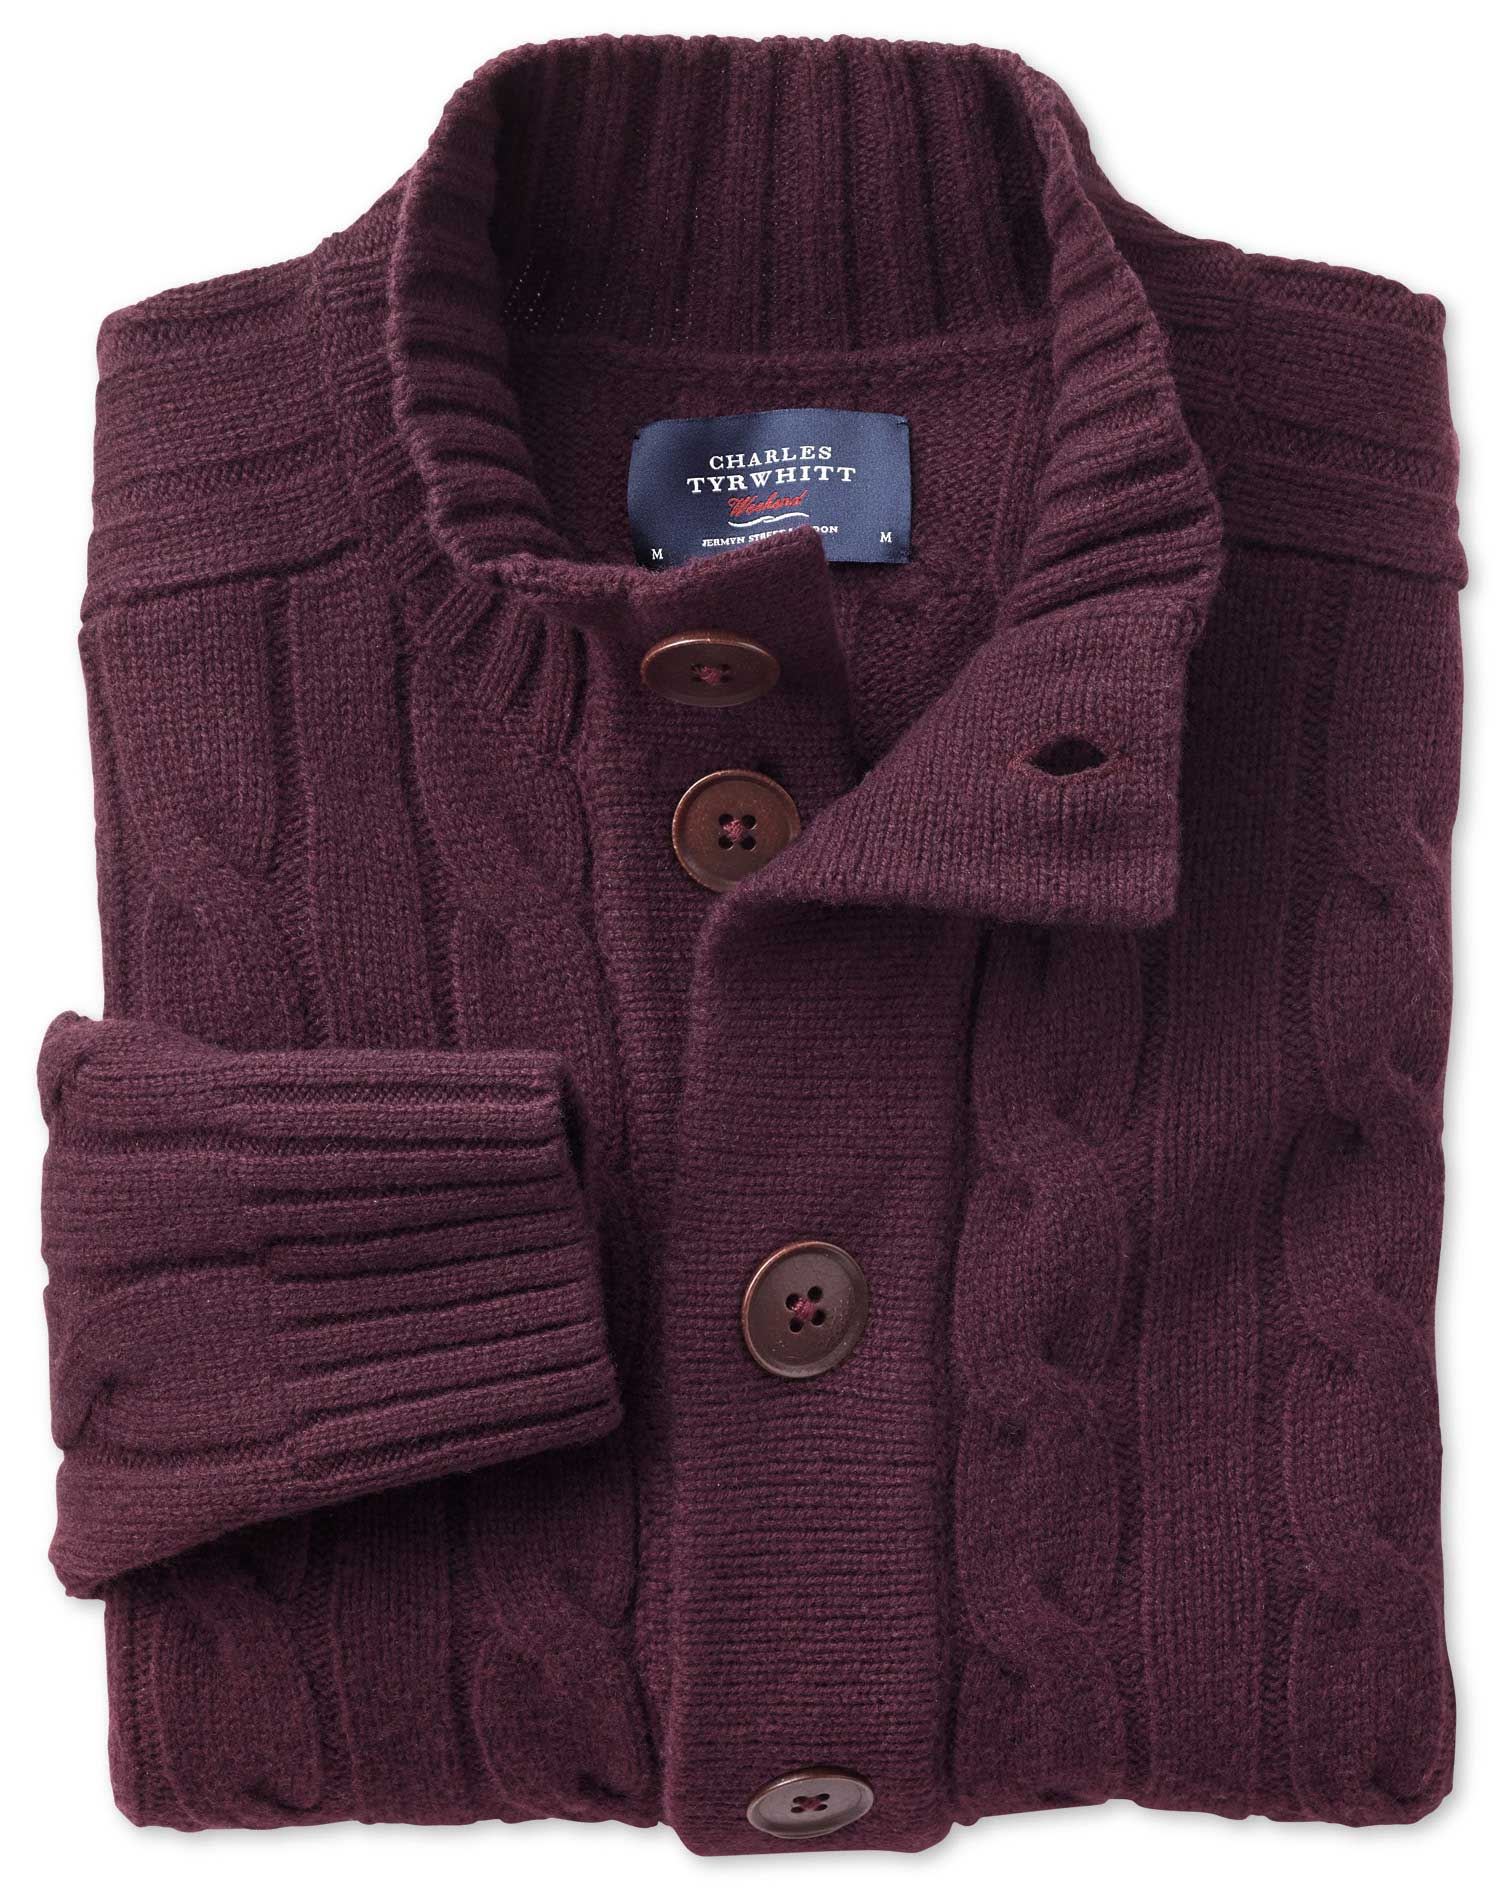 Wine Lambswool Cable Cardigan Size XXL by Charles Tyrwhitt